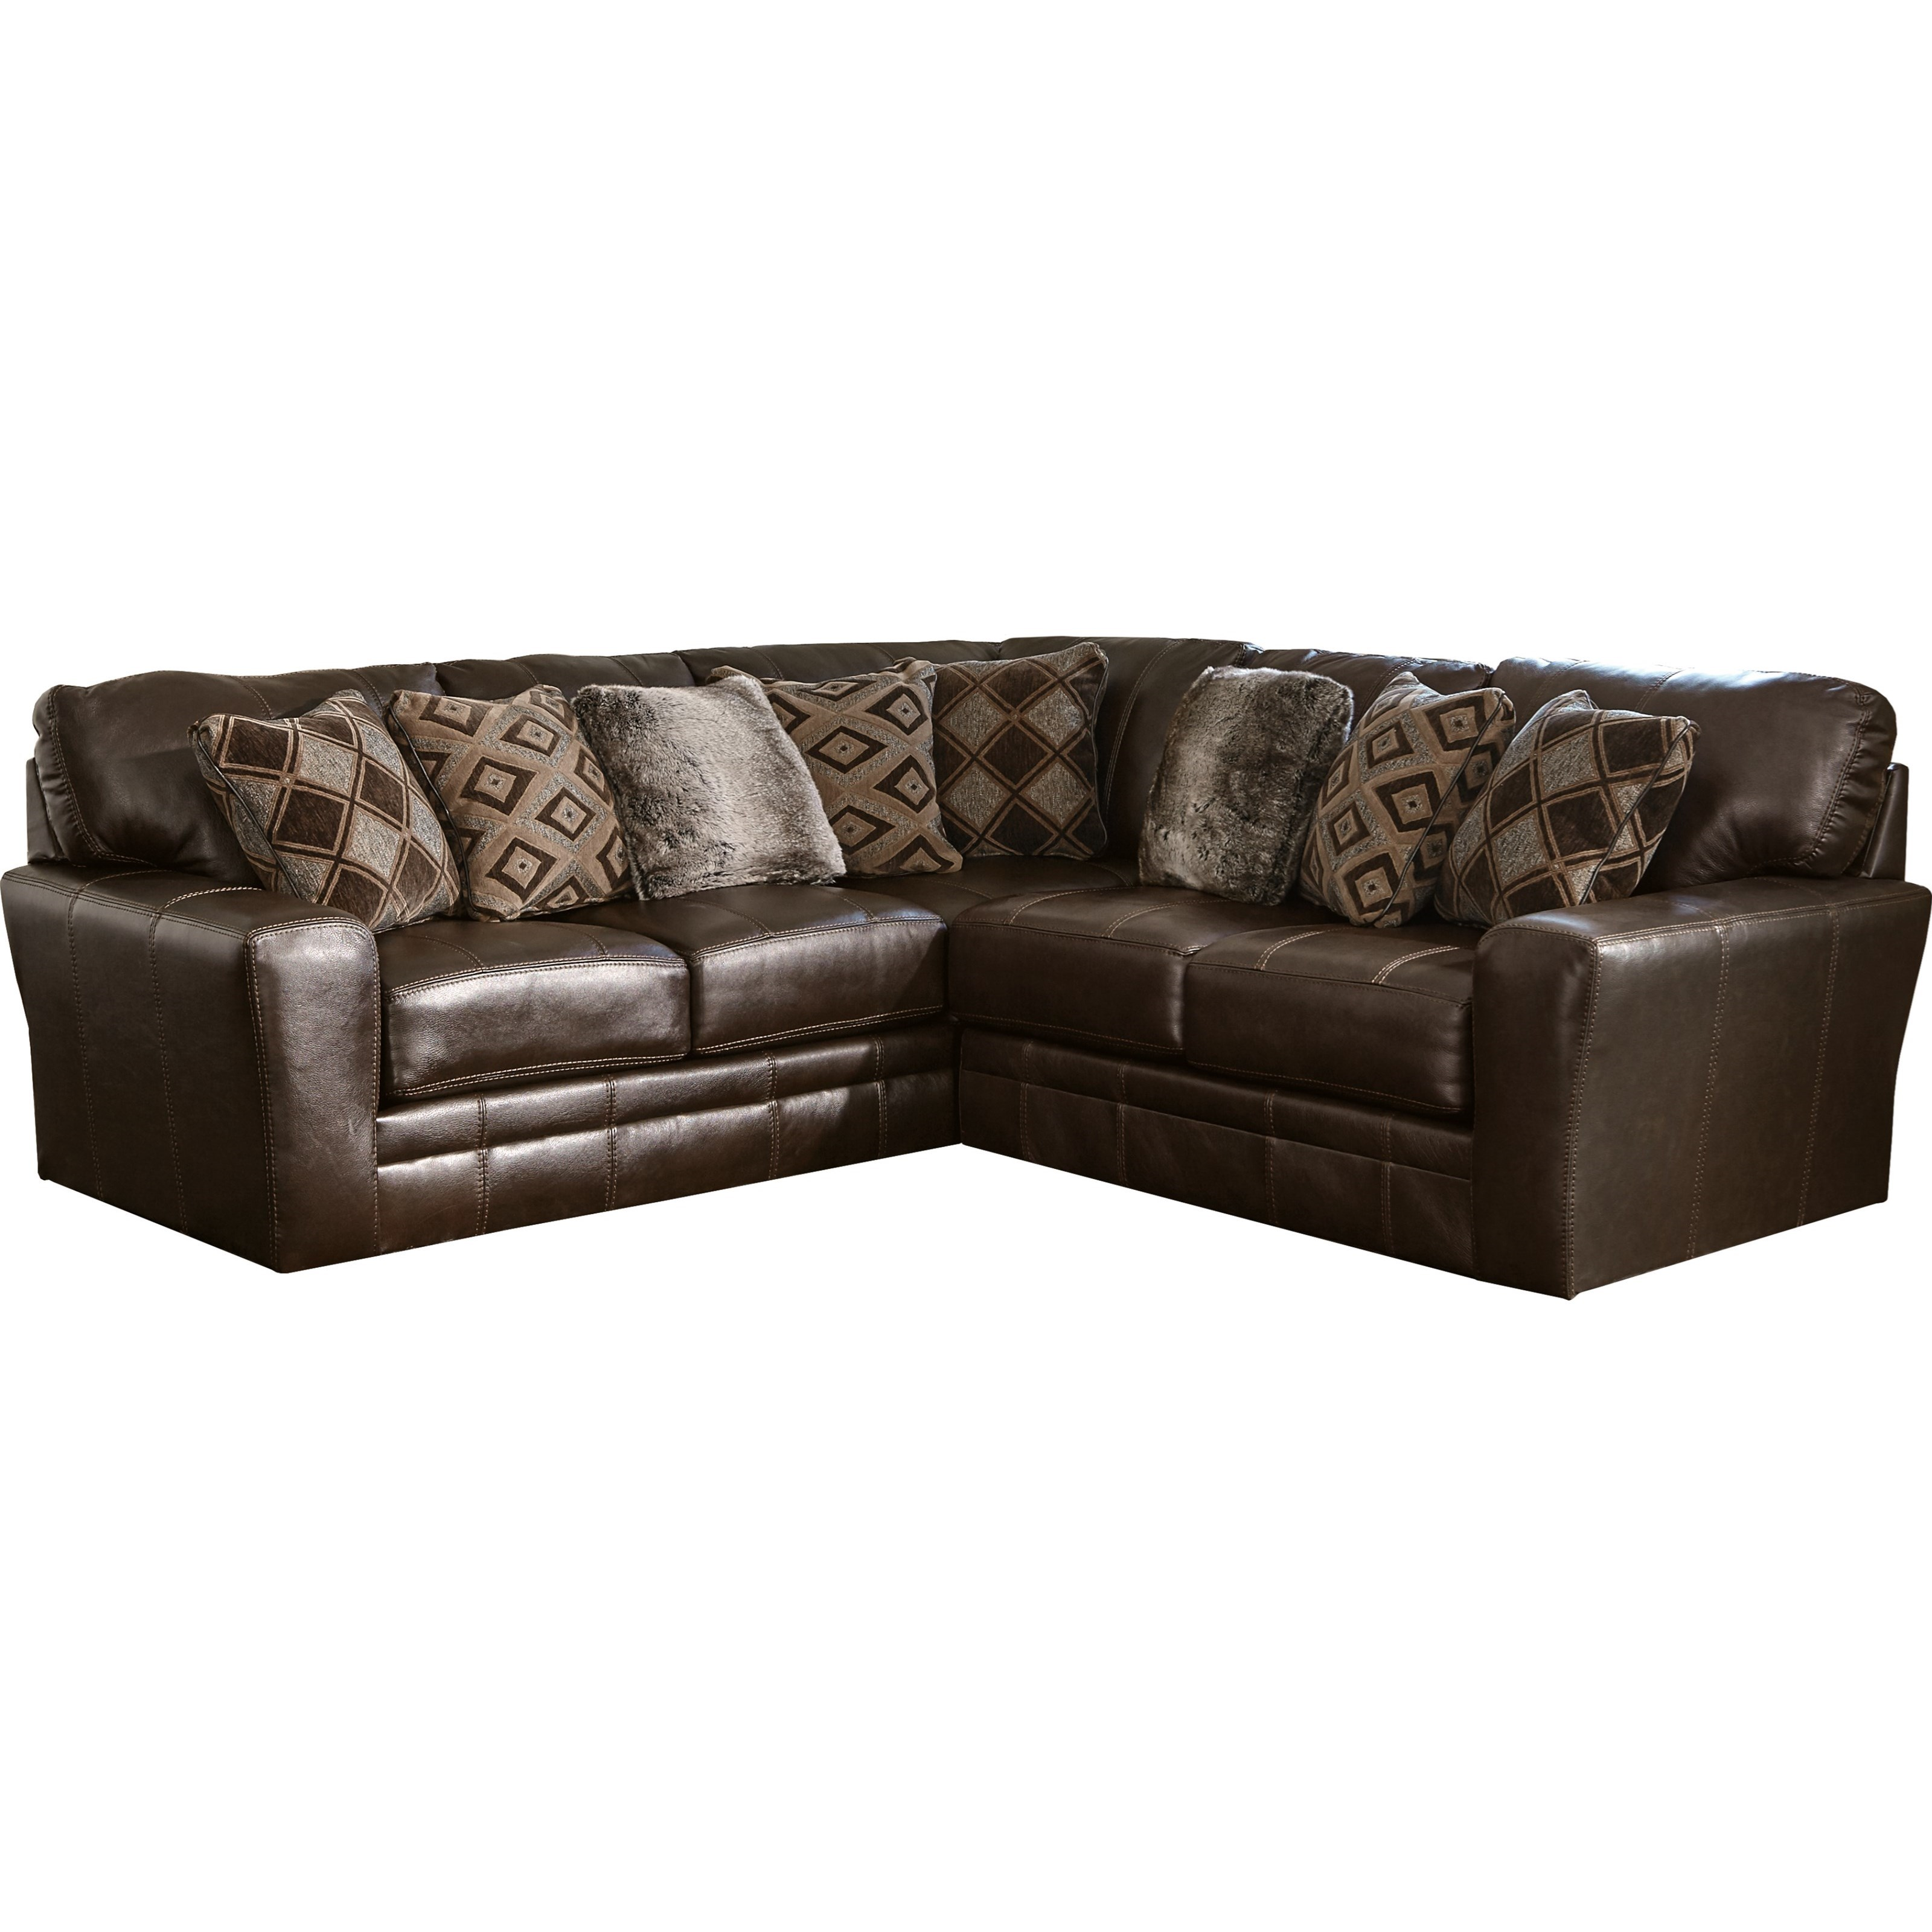 Two Piece Sectional with Track Arms